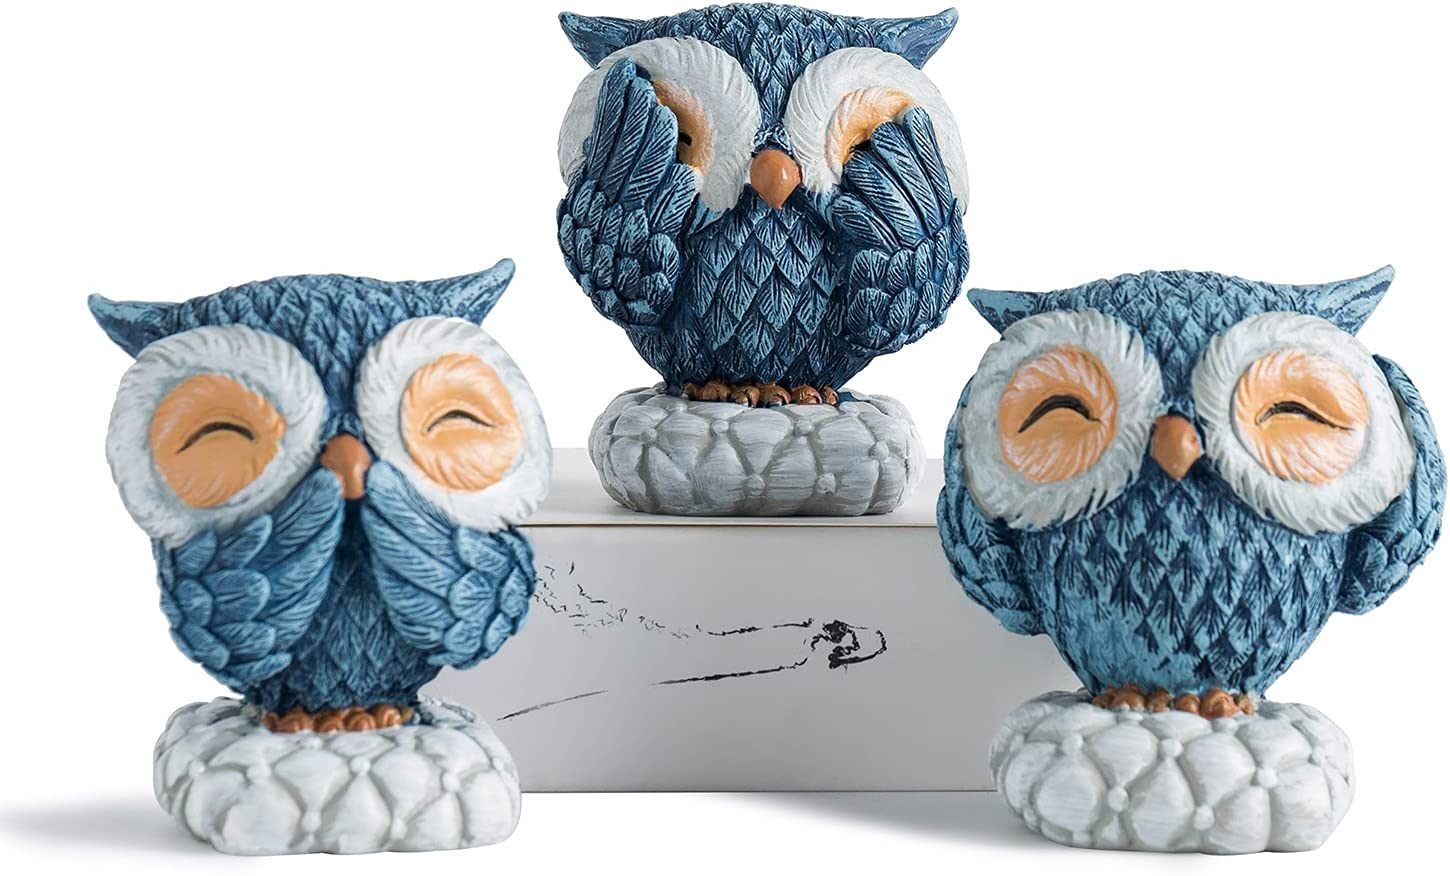 FJS Very Cute Owl Statue Resin Blue Owl Figurine Set of 3, Nice Decoration for Living Room Bedroom Office Book Shelf TV Stand Decor Gifts for Birds Lovers